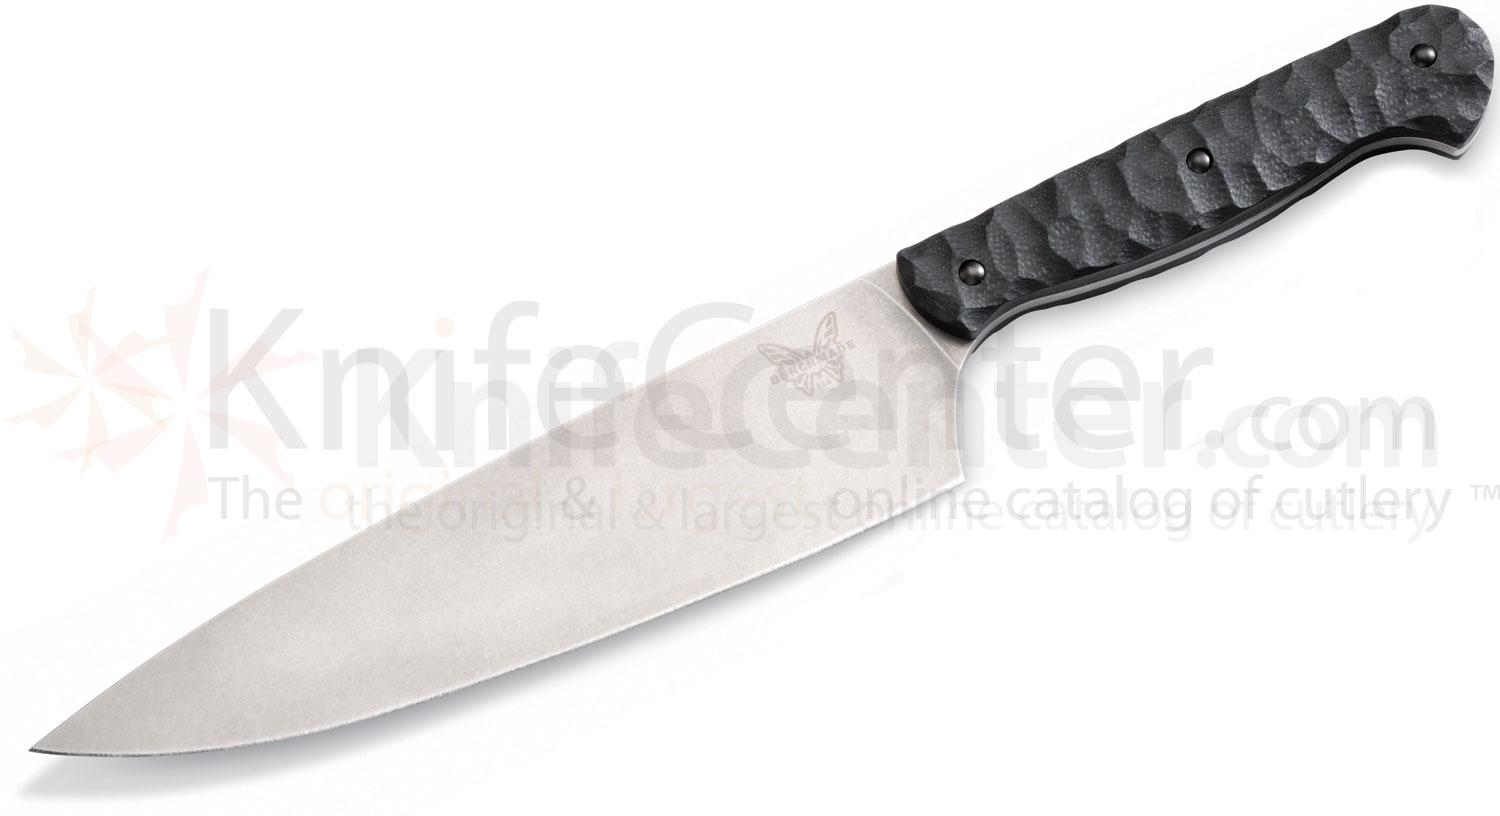 benchmade model 4580 prestigedge kitchen 8 quot chef s knife